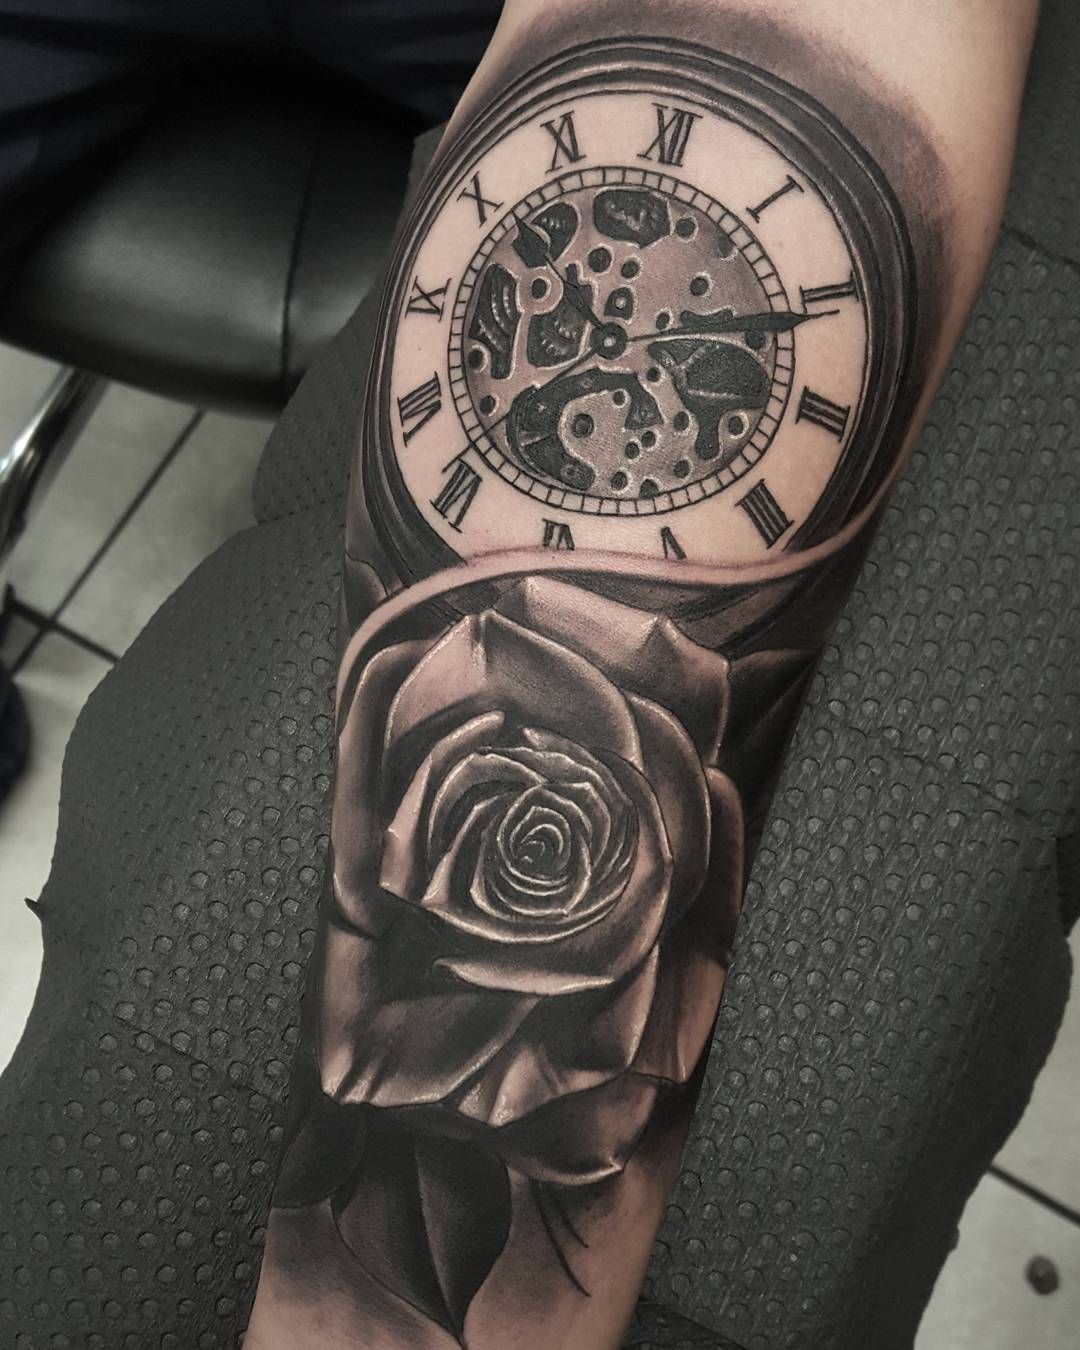 80 timeless pocket watch tattoo ideas a classic and fashionable totem next tat ideas. Black Bedroom Furniture Sets. Home Design Ideas